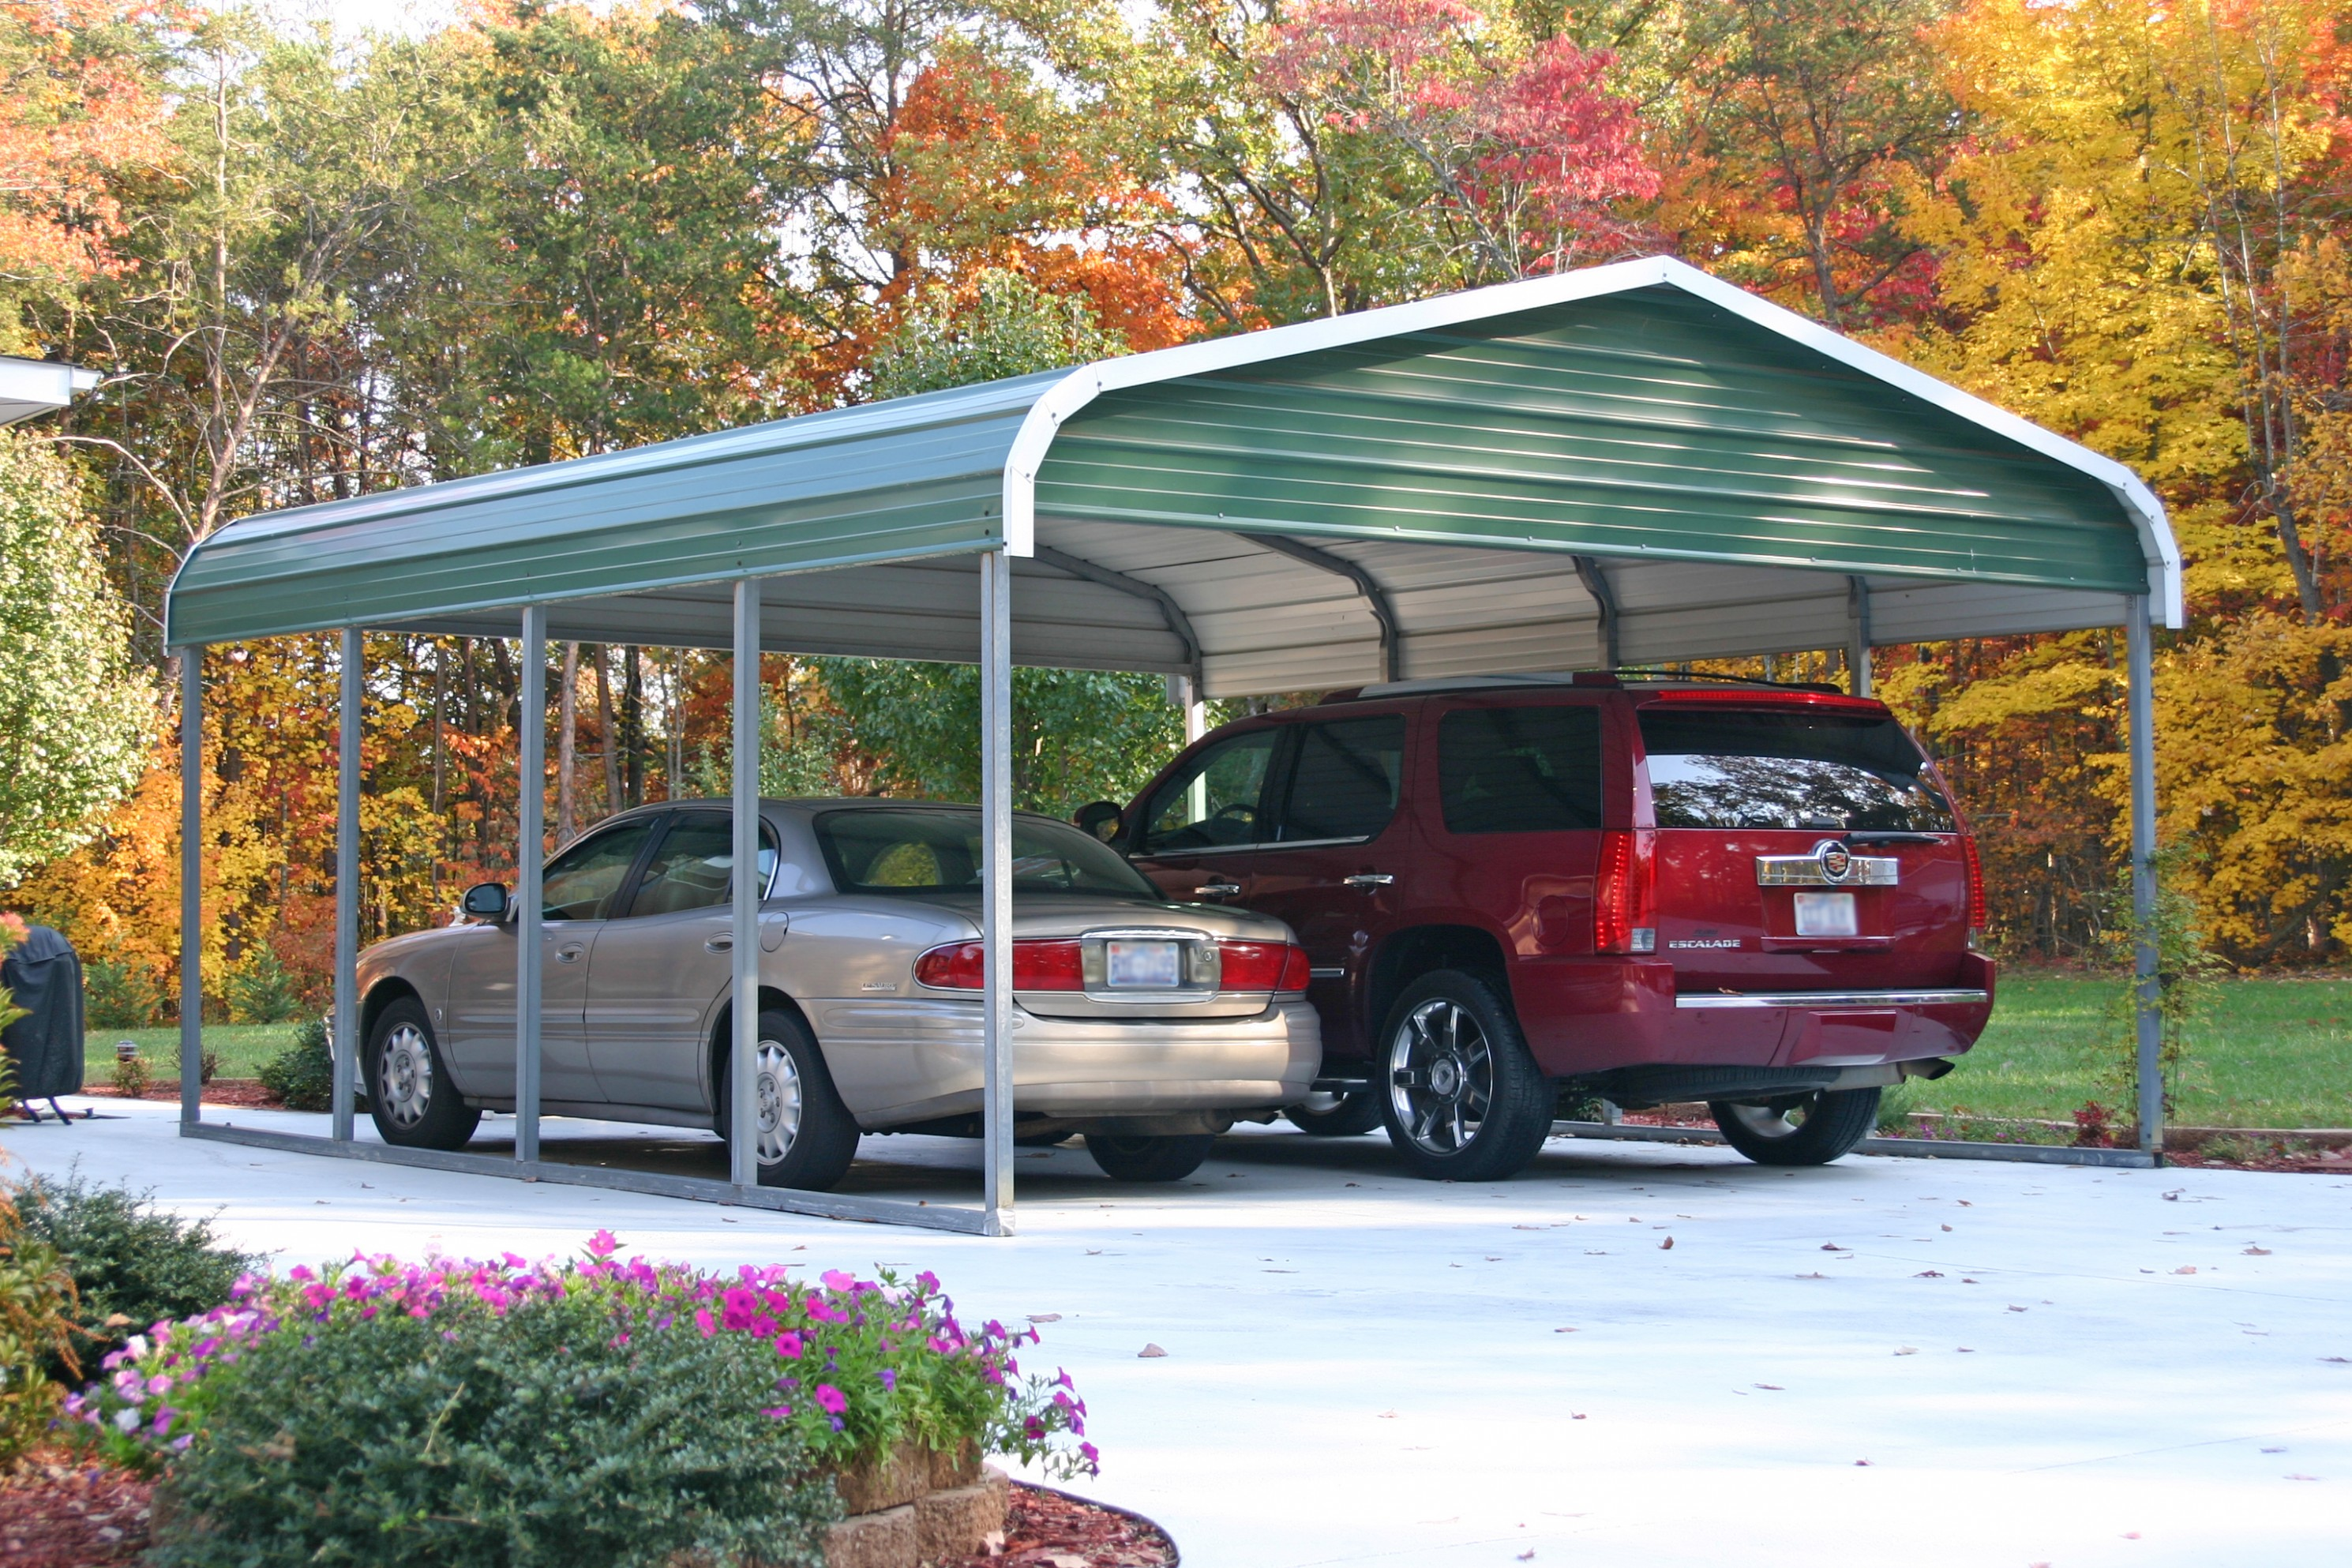 Ten Outrageous Ideas For Your Diy Car Port | diy car port